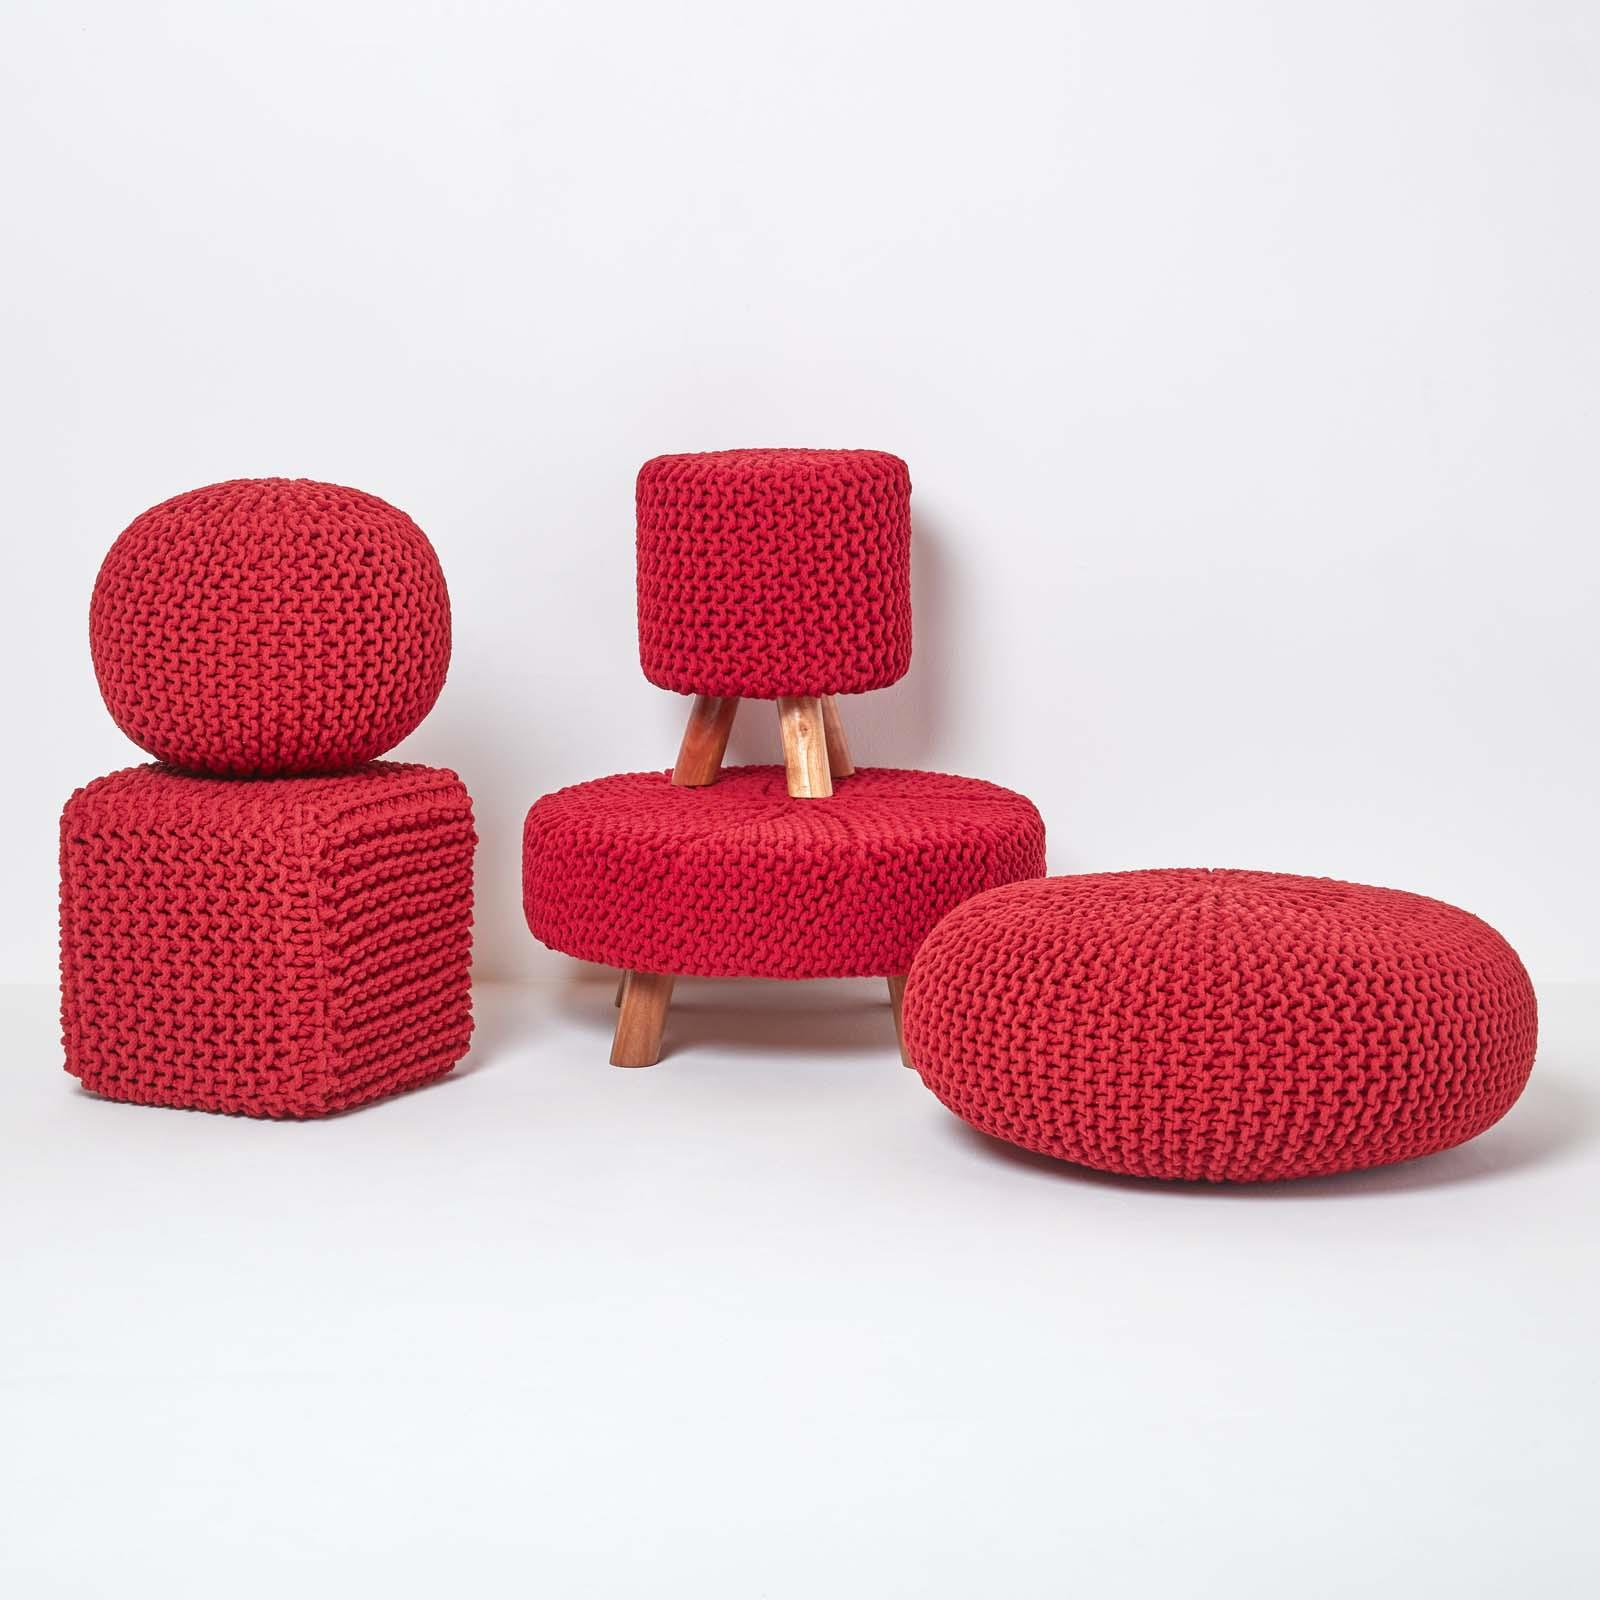 Hand-Knitted-100-Cotton-Pouffes-Round-Sphere-Or-Cube-Square-Chunky-Footstools thumbnail 179